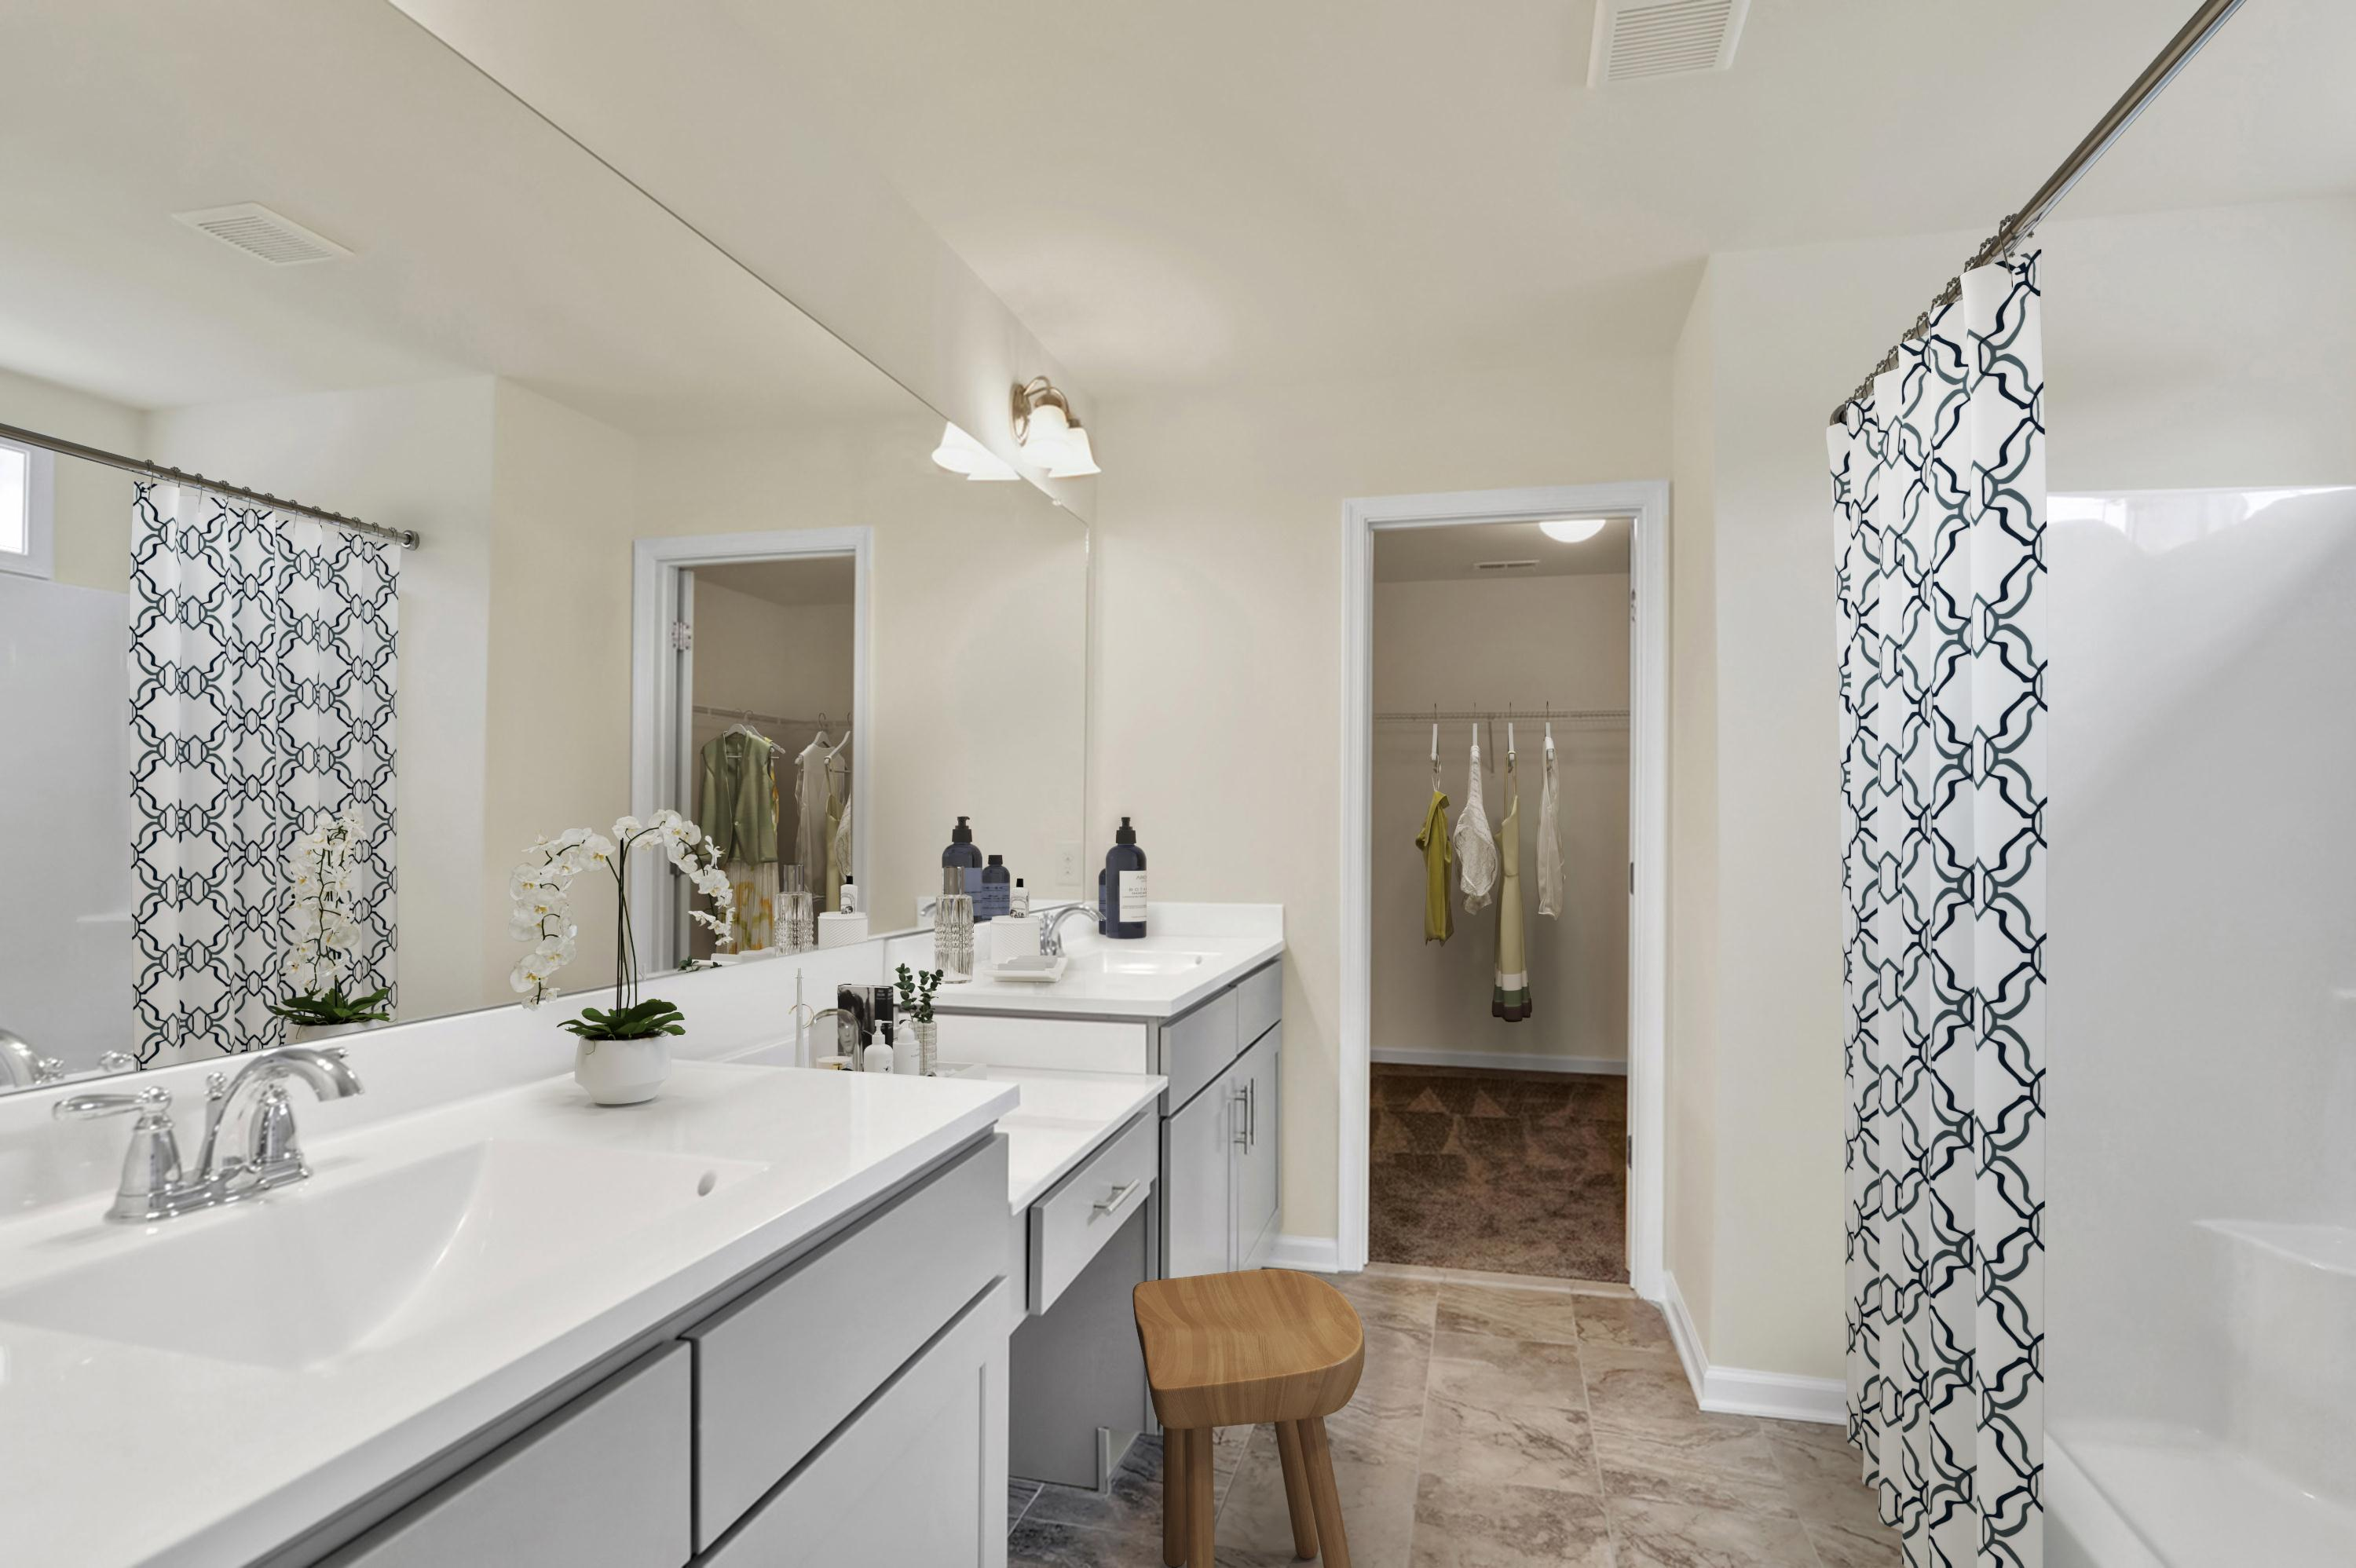 Bathroom featured in The Wyoming By Ashburn Homes in Dover, DE